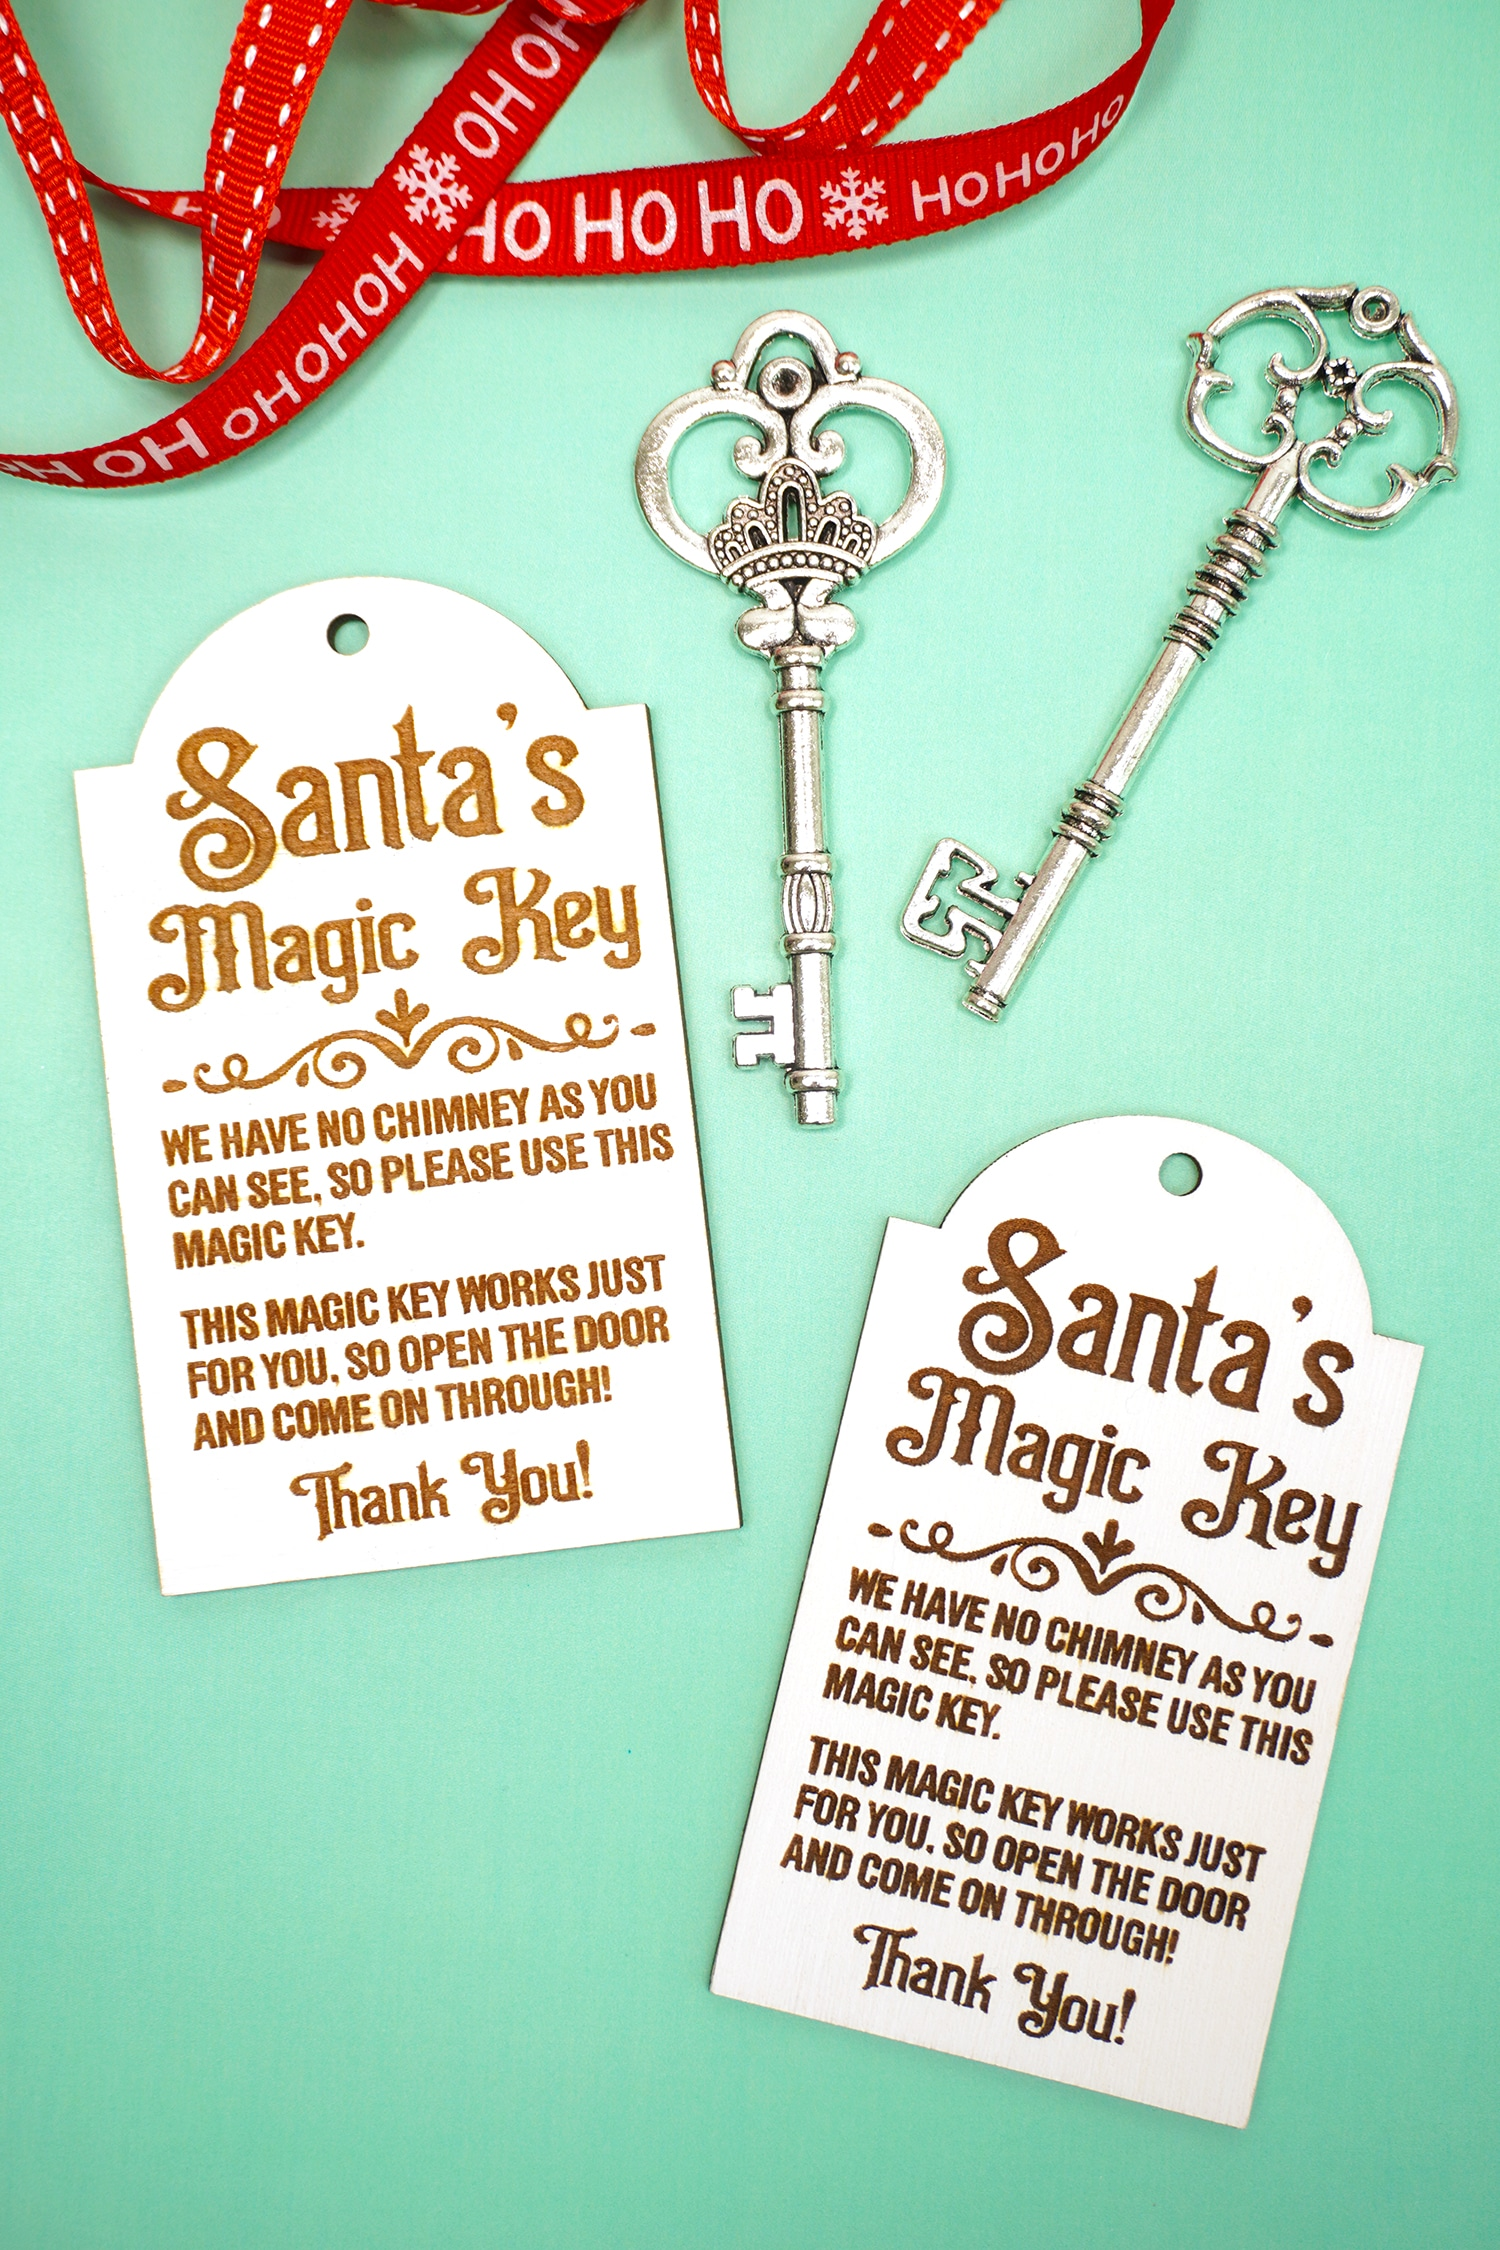 Two Santa's Magic Key tags with red ribbons and silver keys on a mint green background